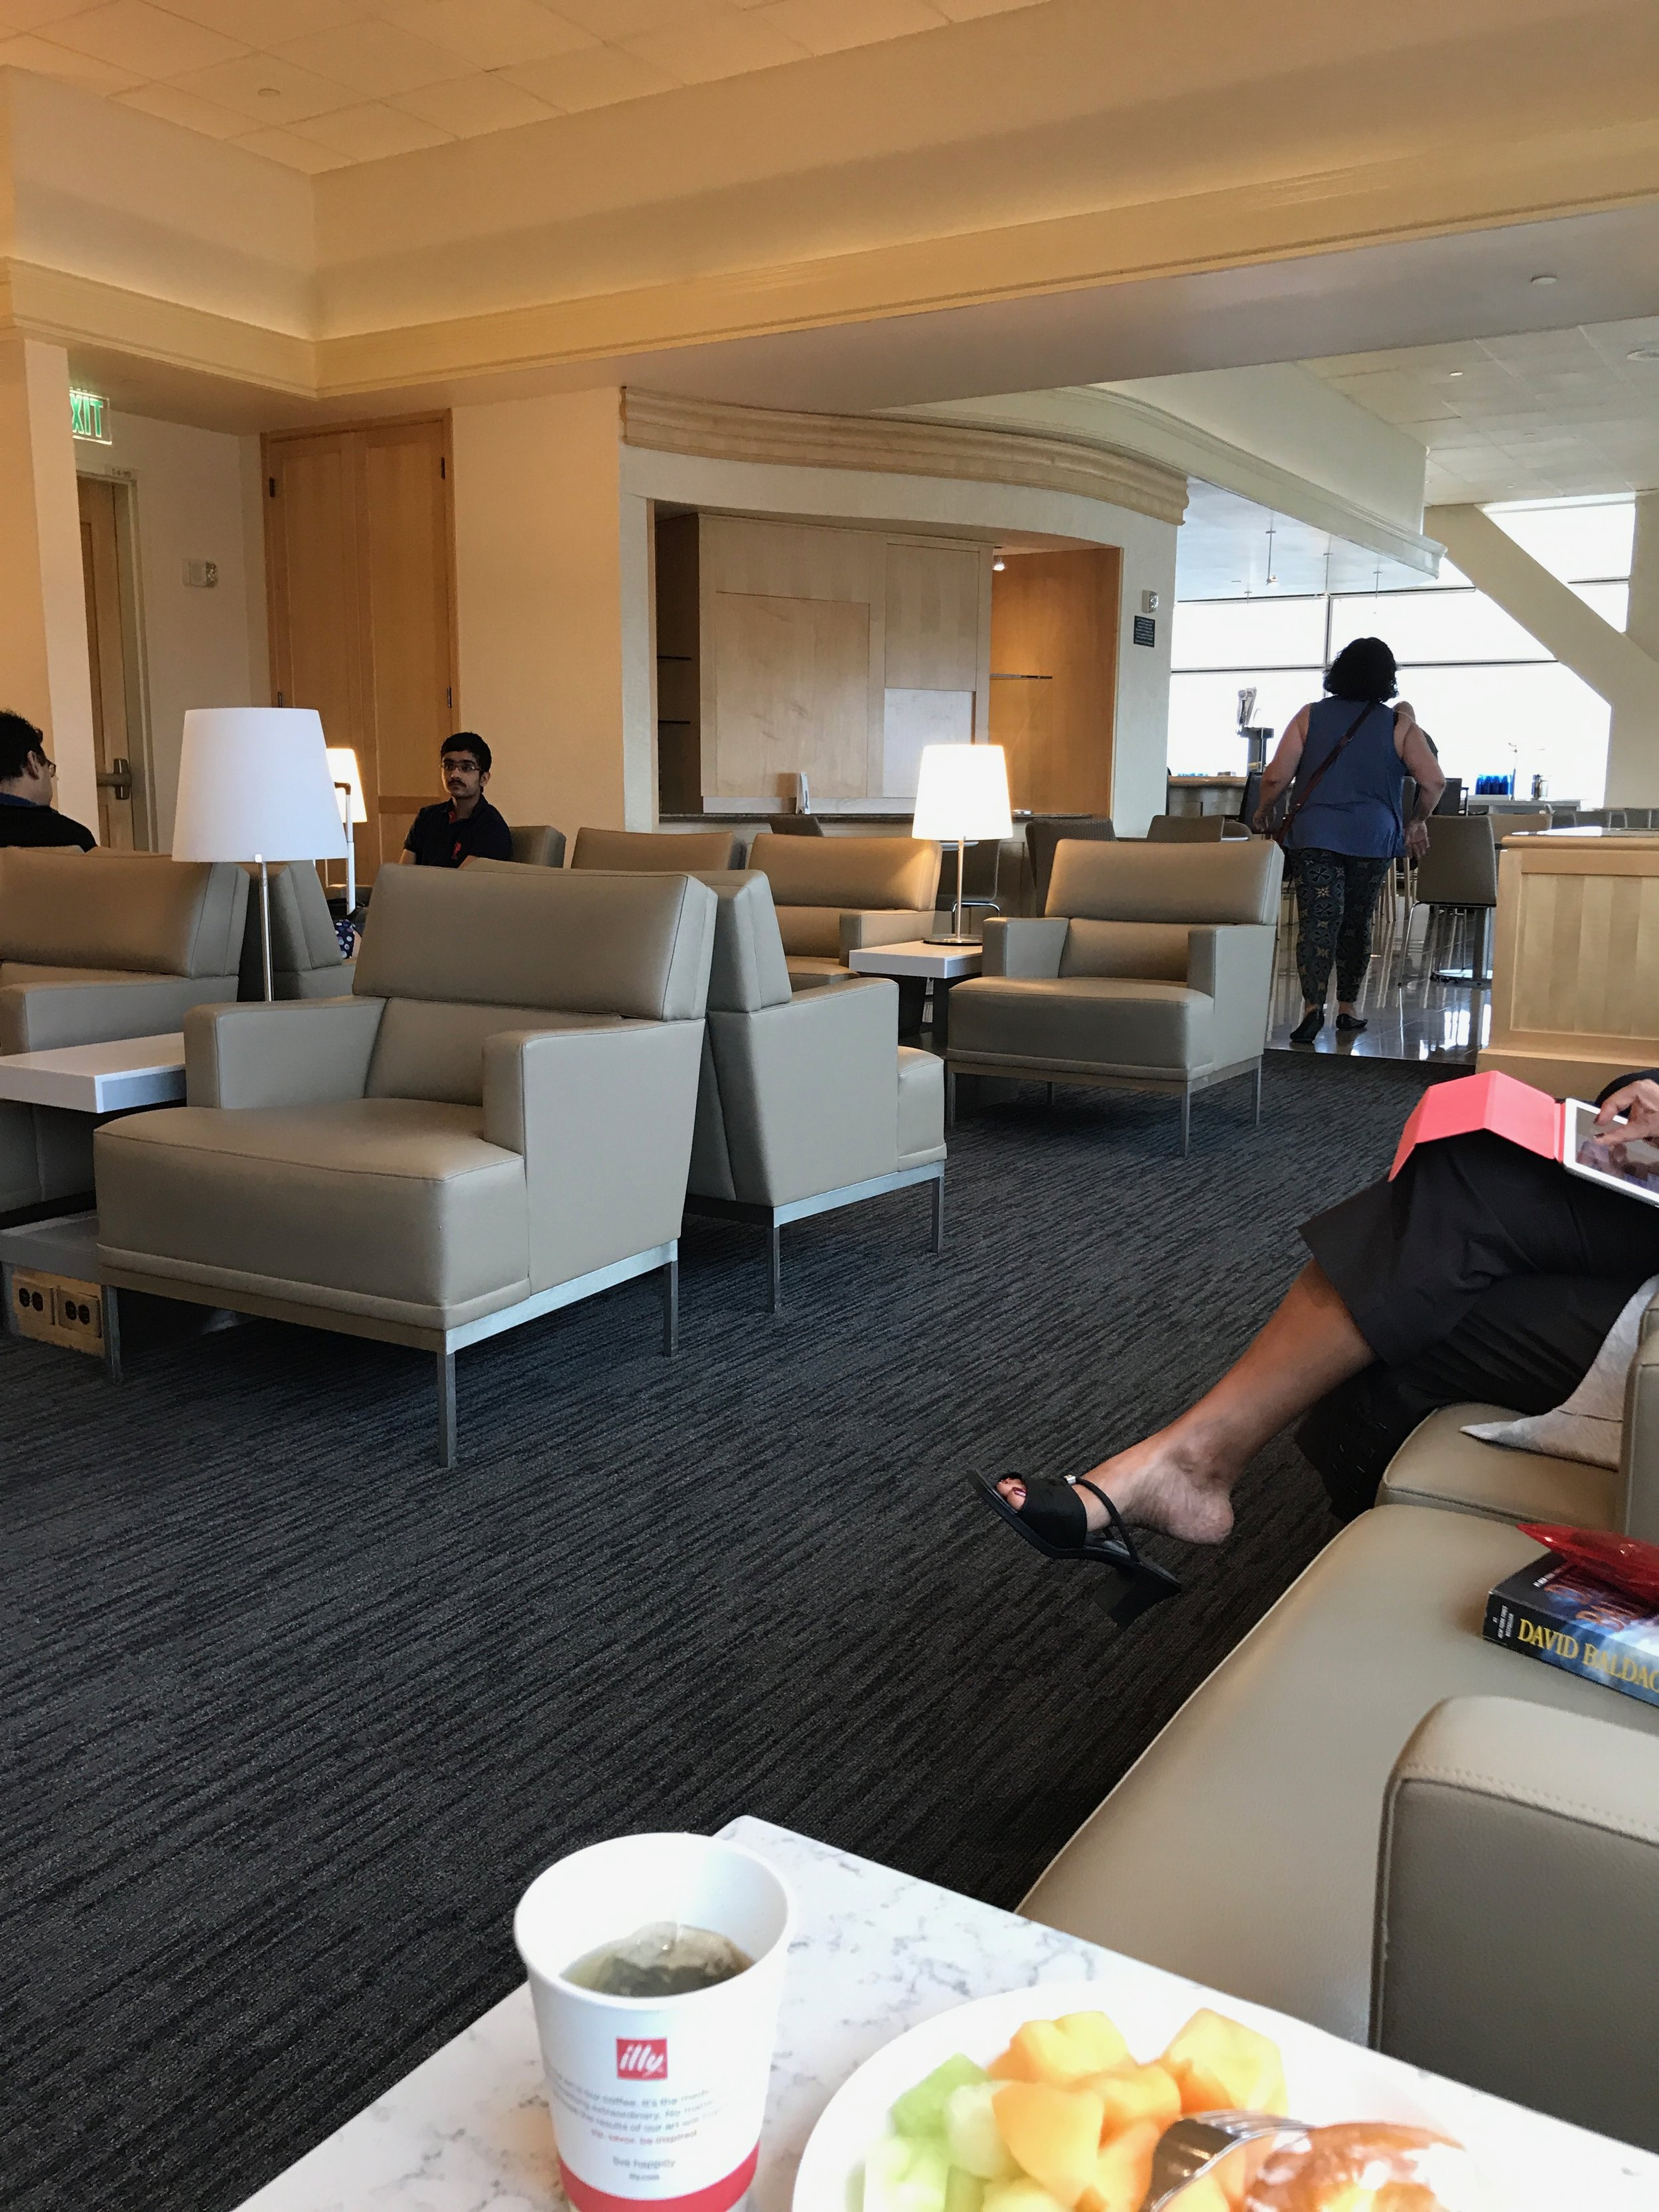 The United Club in SFO was pretty quiet in the morning but got extremely crowded by 10 am.